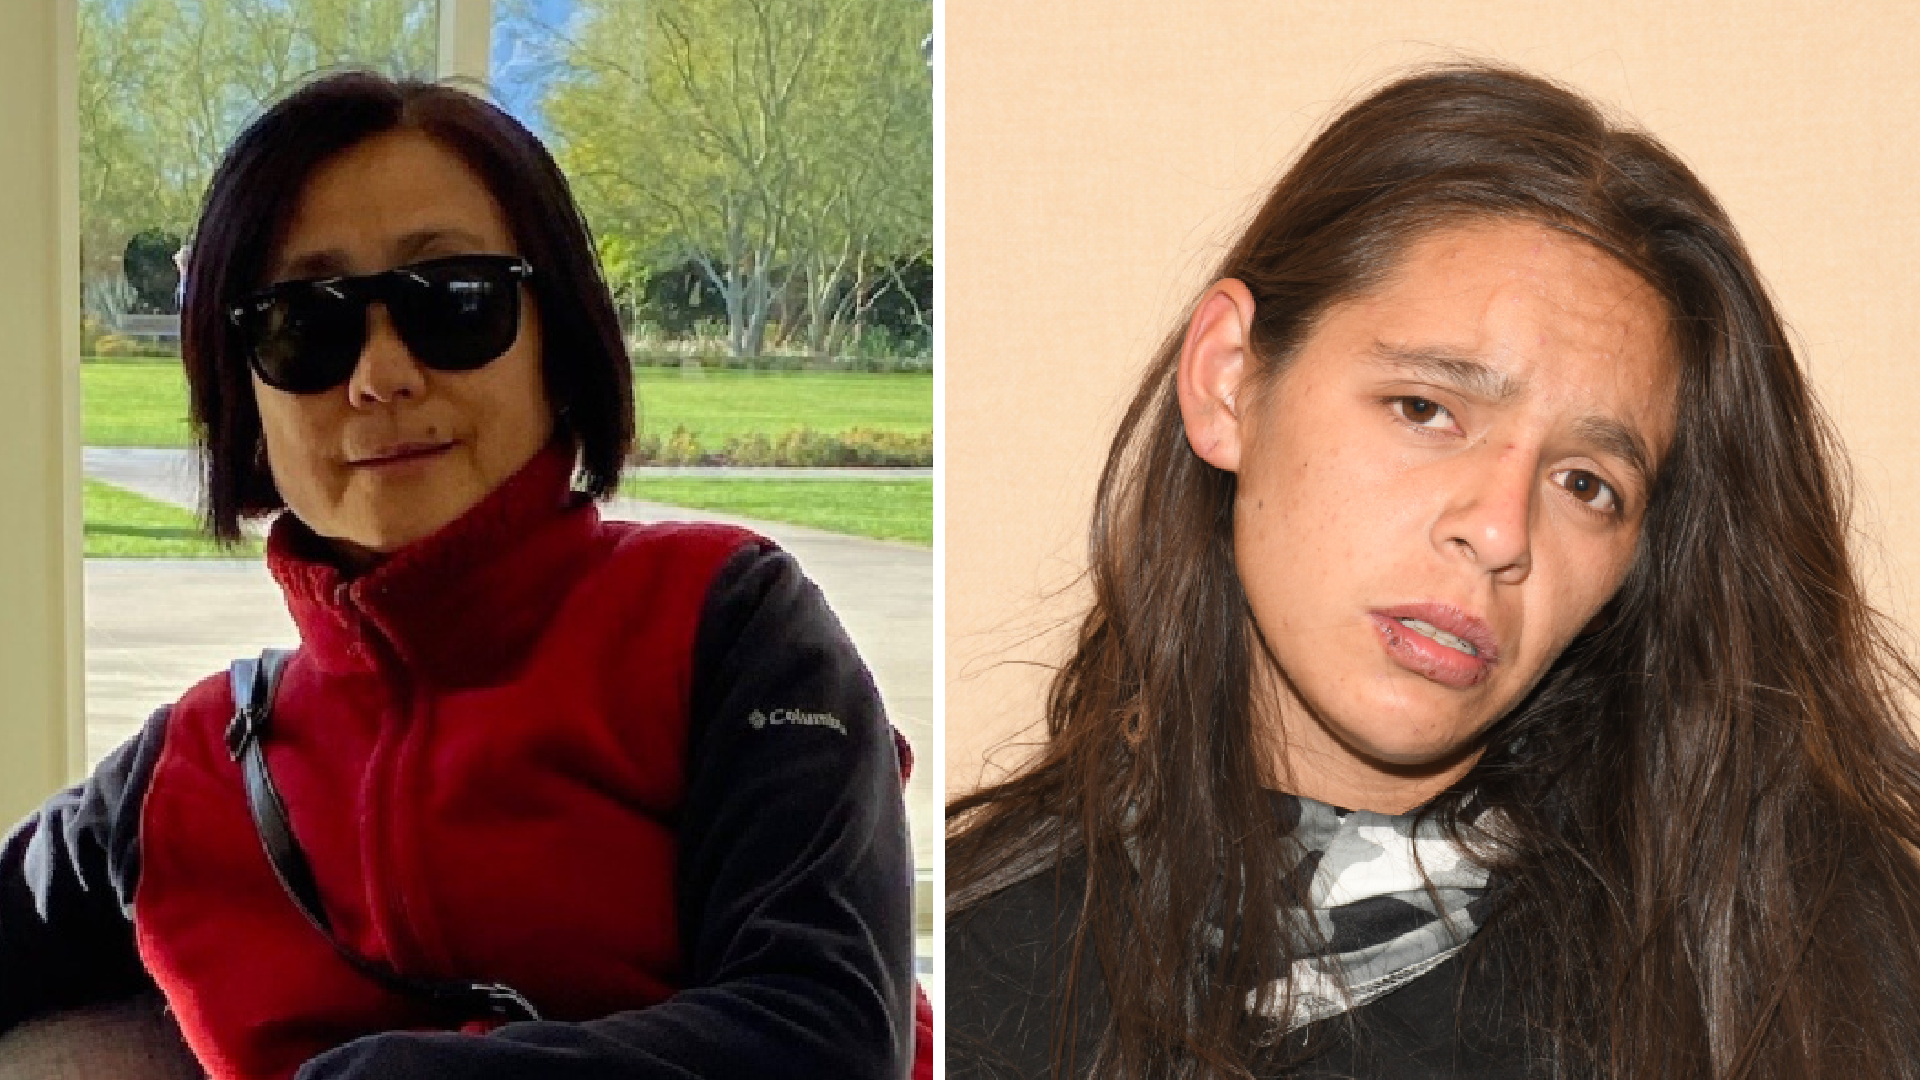 Ke Chieh Meng, 64, is seen in an undated photo provided by police. The photo on the right shows the person arrested on suspicion of killing her, Darlene Stephanie Montoya, 23. (Riverside Police Department)